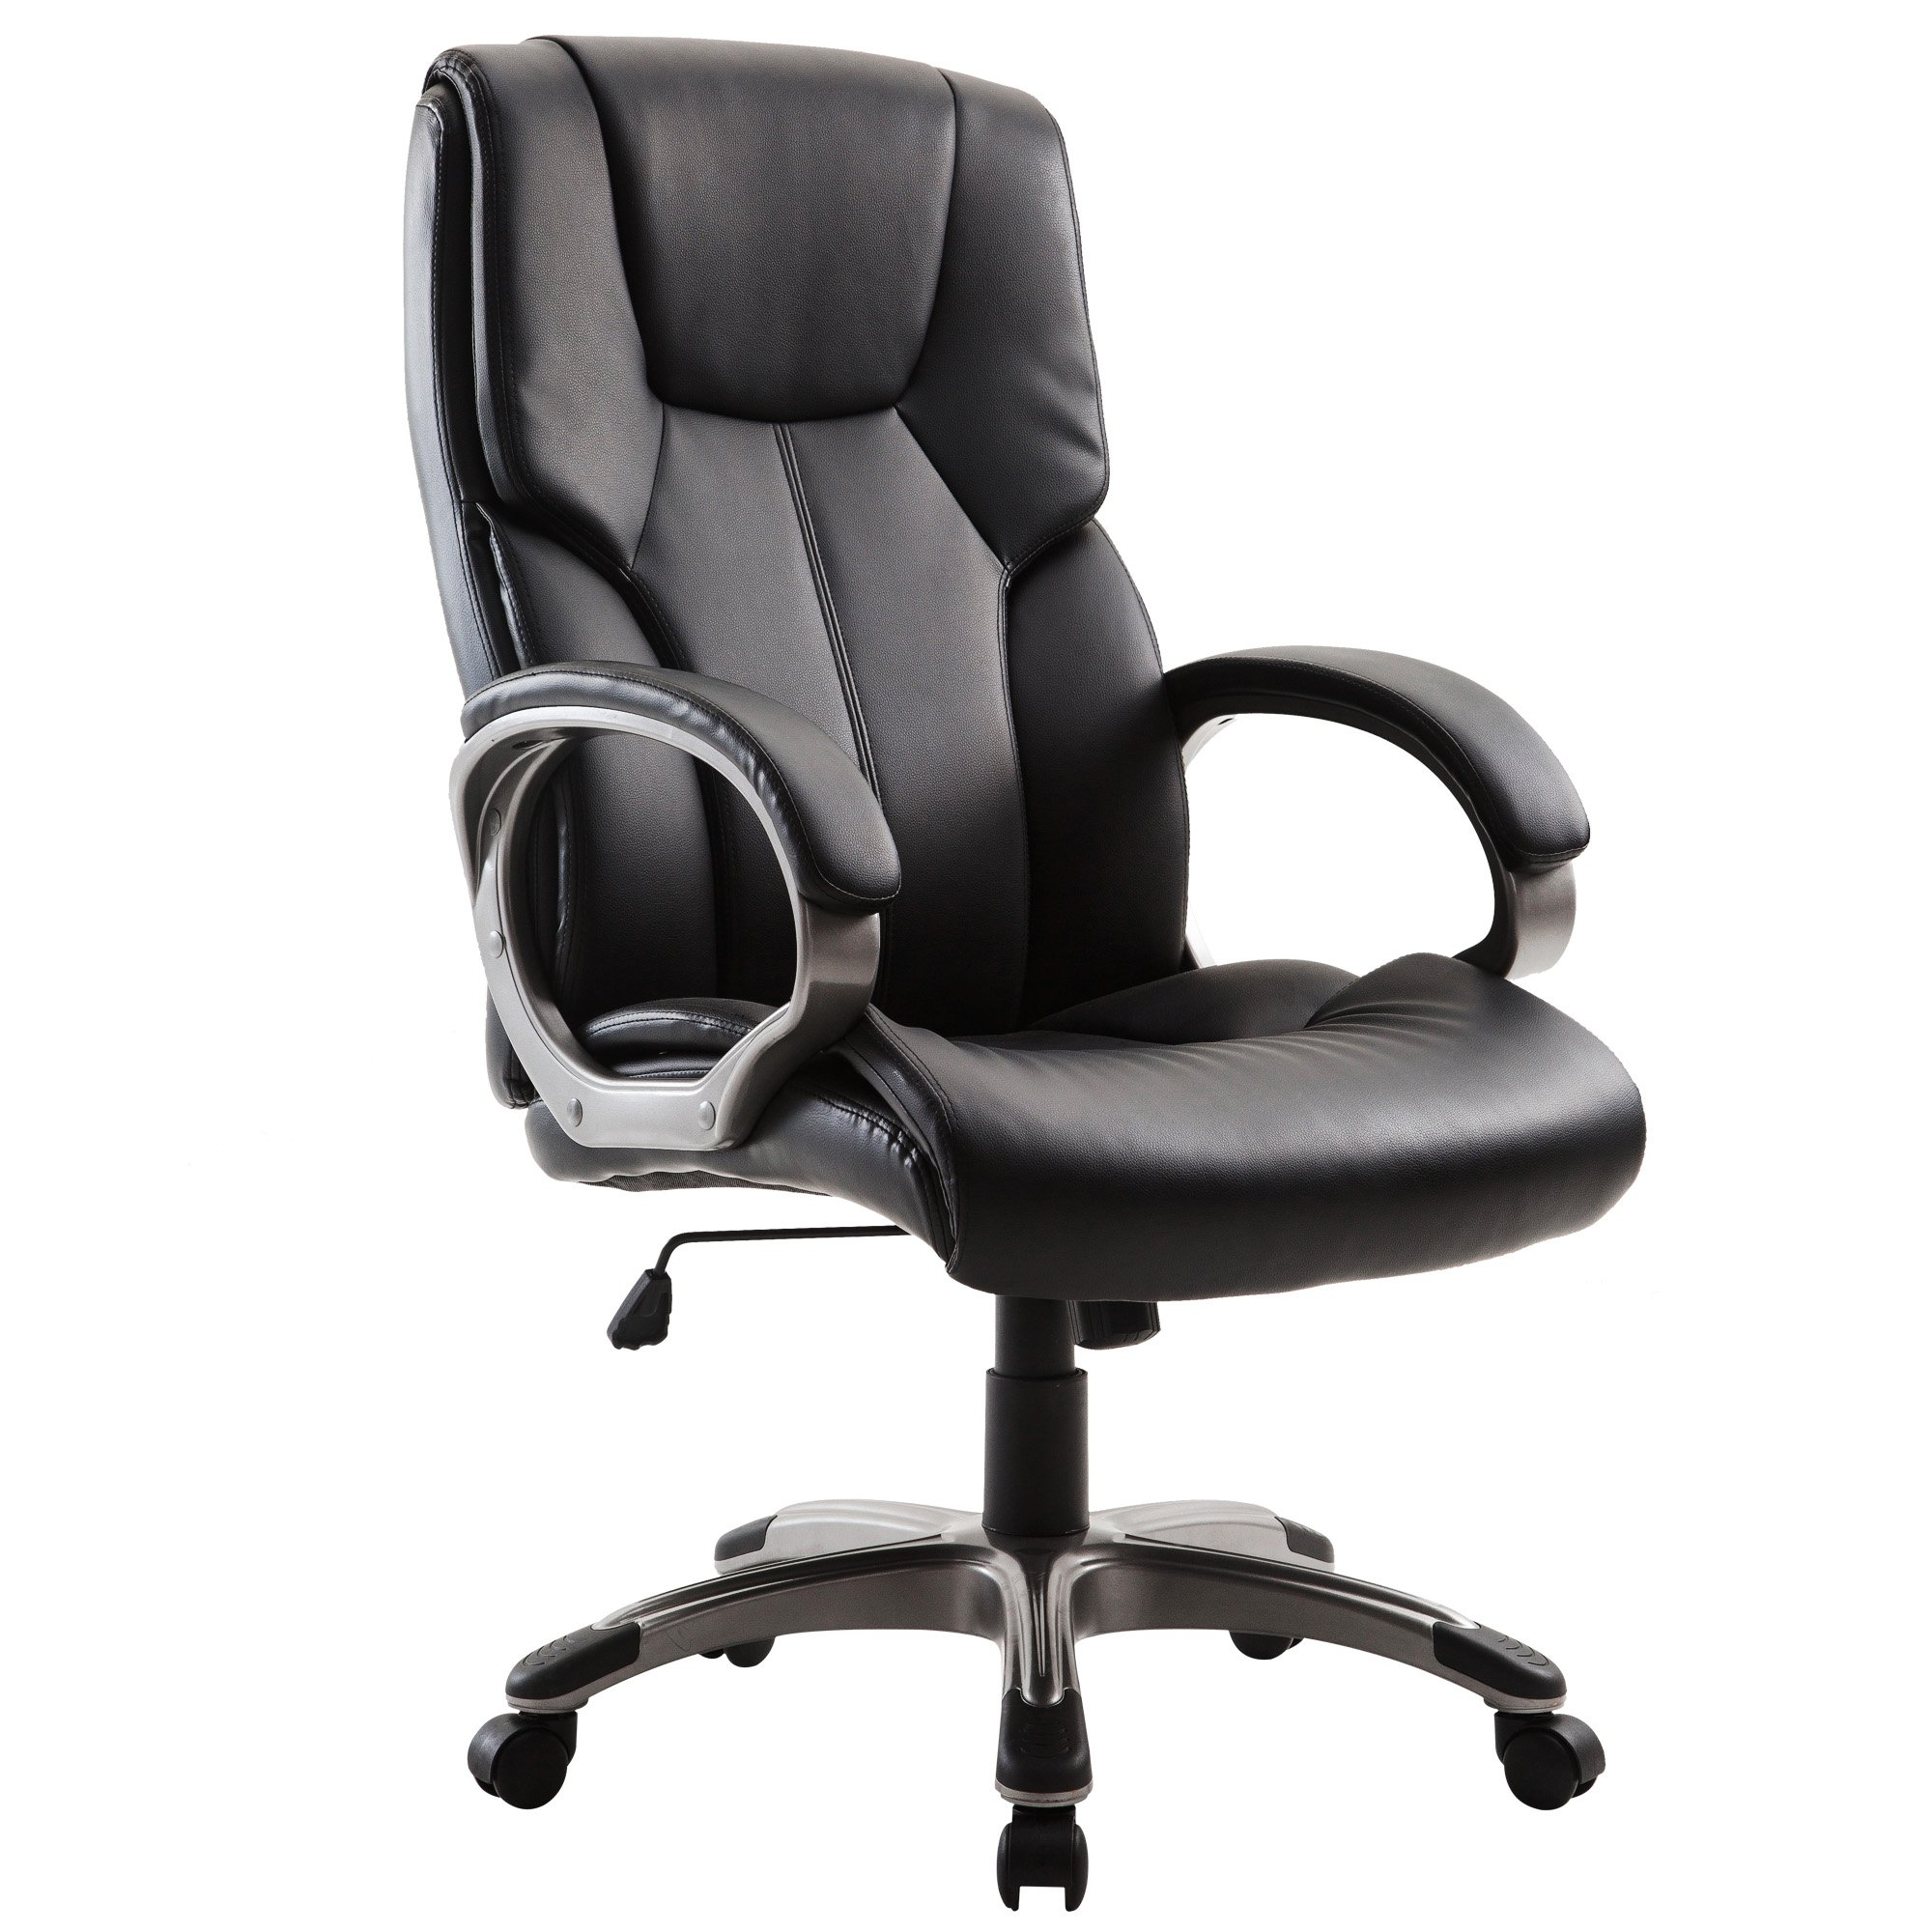 Acepro Office Chair Desk Chair Computer Gaming Chair High Back Leather Office Desk Chairs Adjustable Executive Chair PU Leather, Black